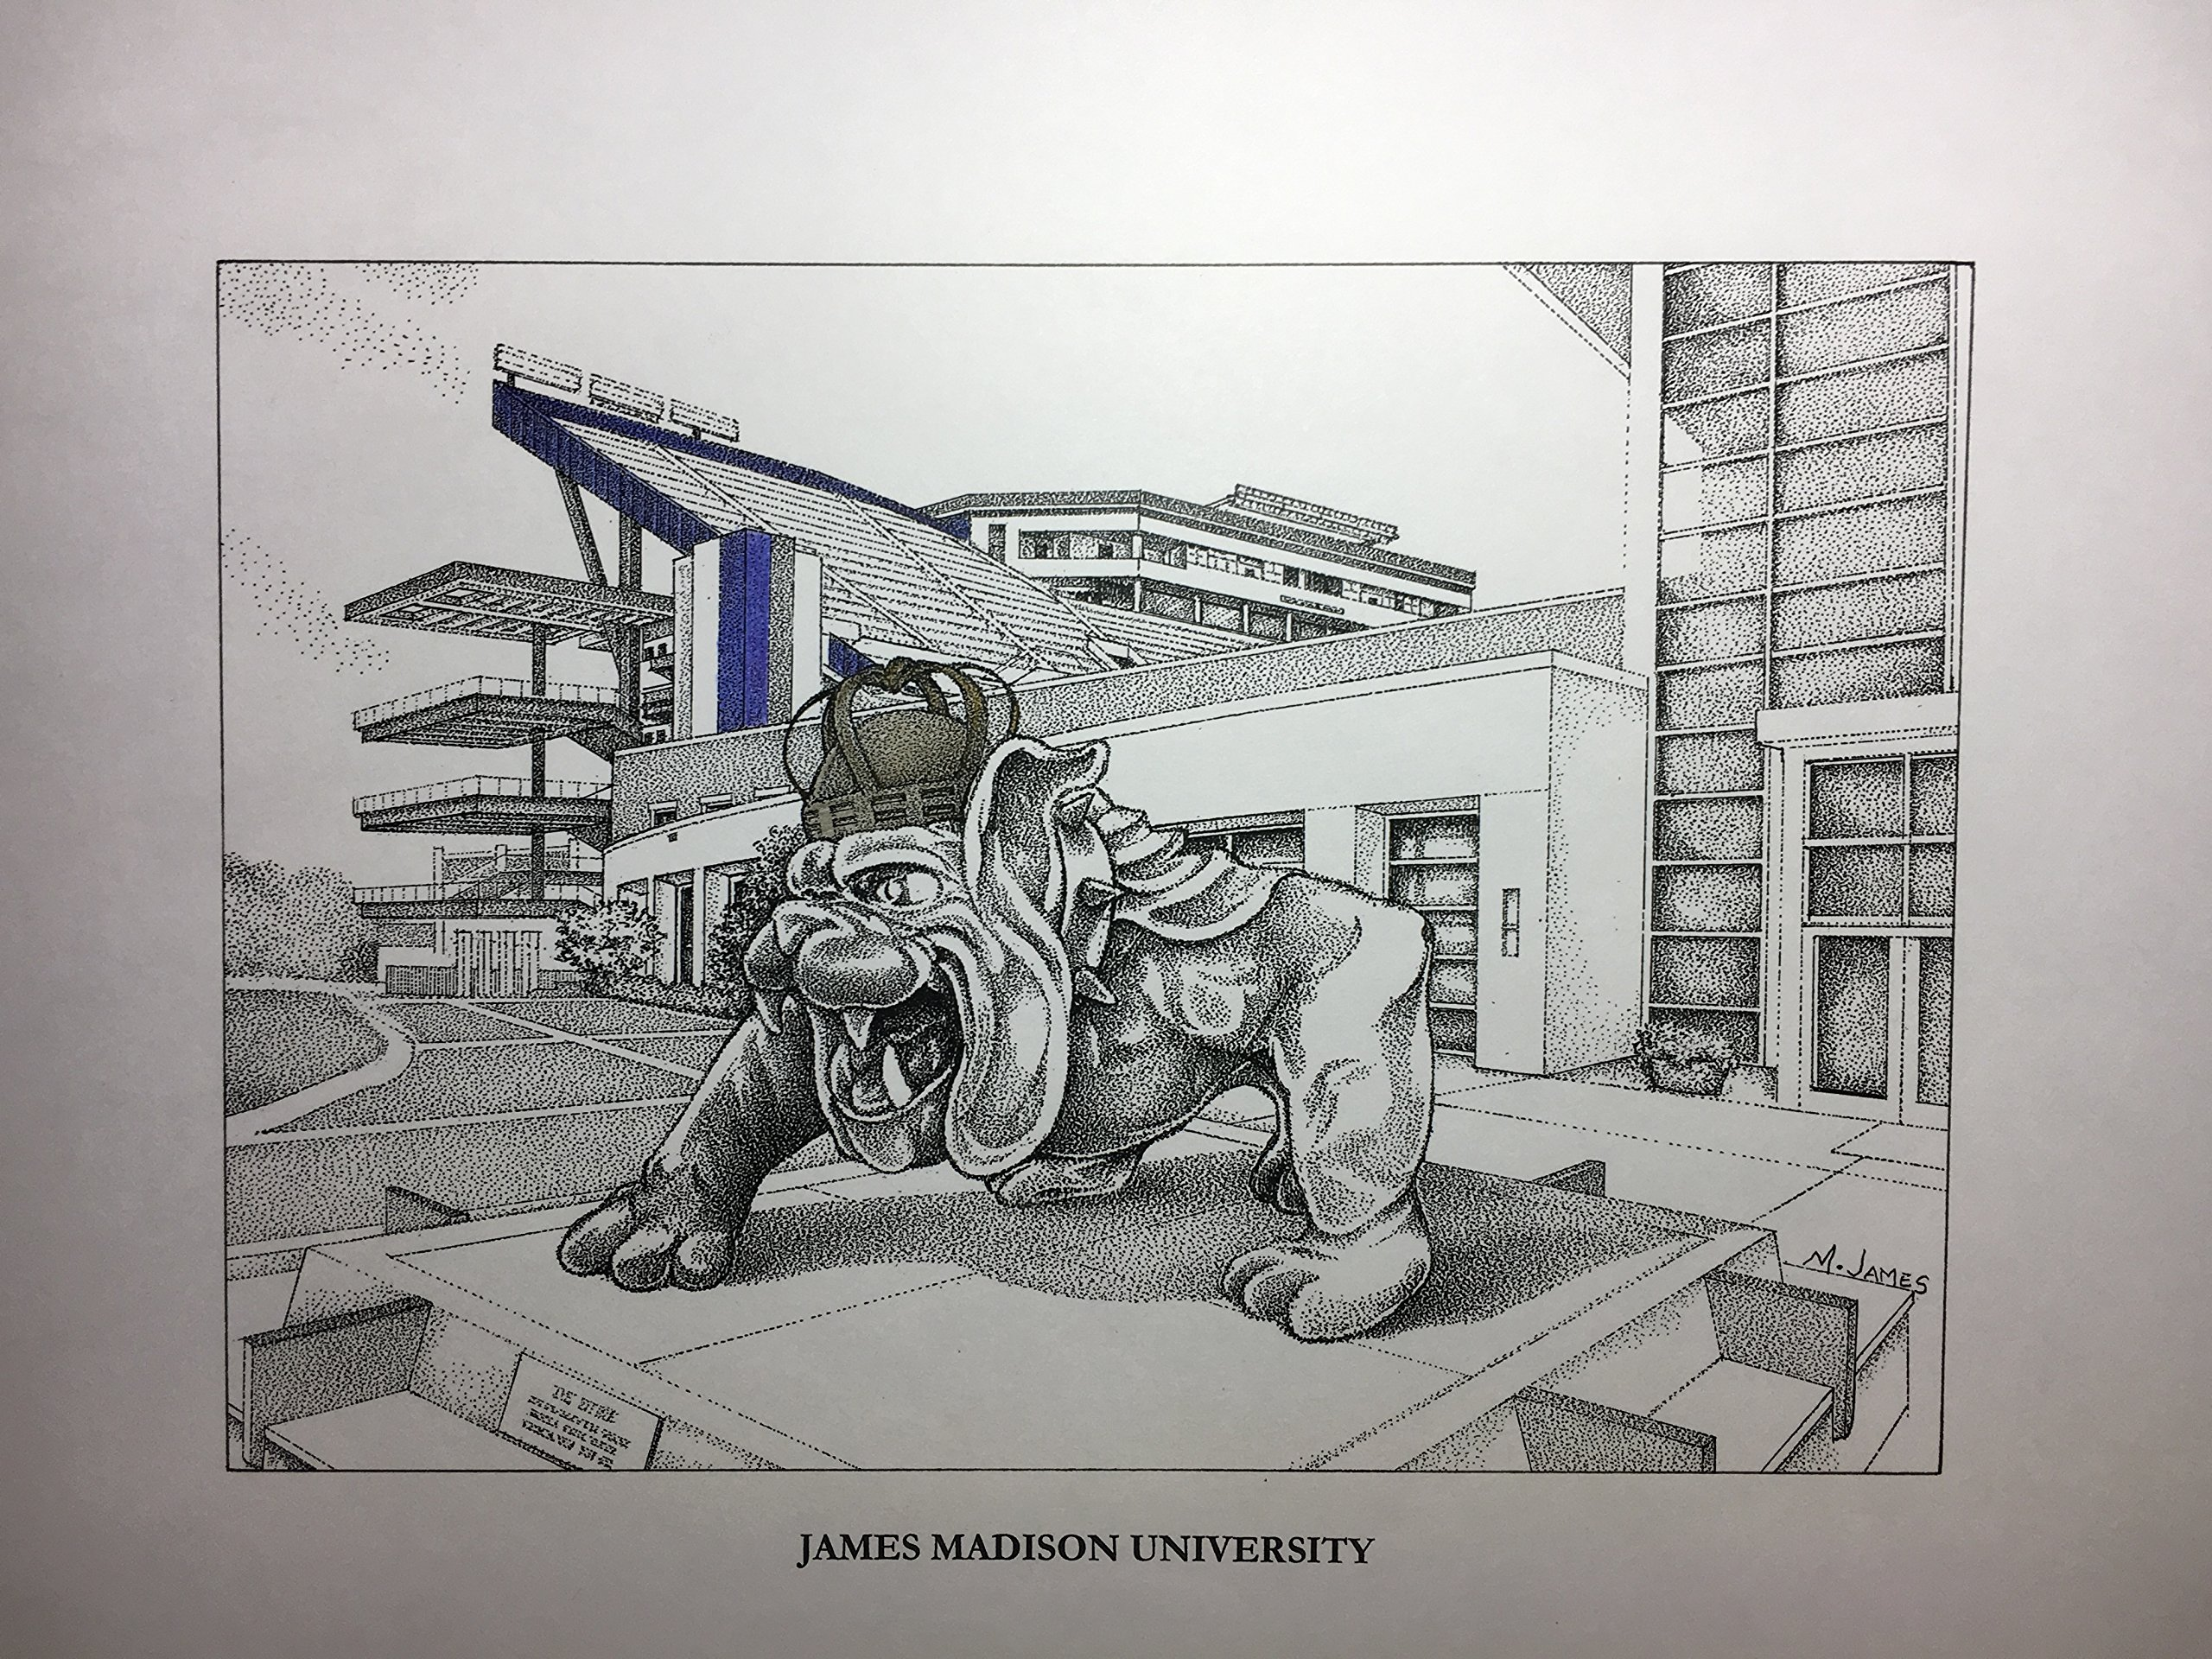 James Madison football stadium with duke statue 11''x14'' hand-drawn pen and ink print